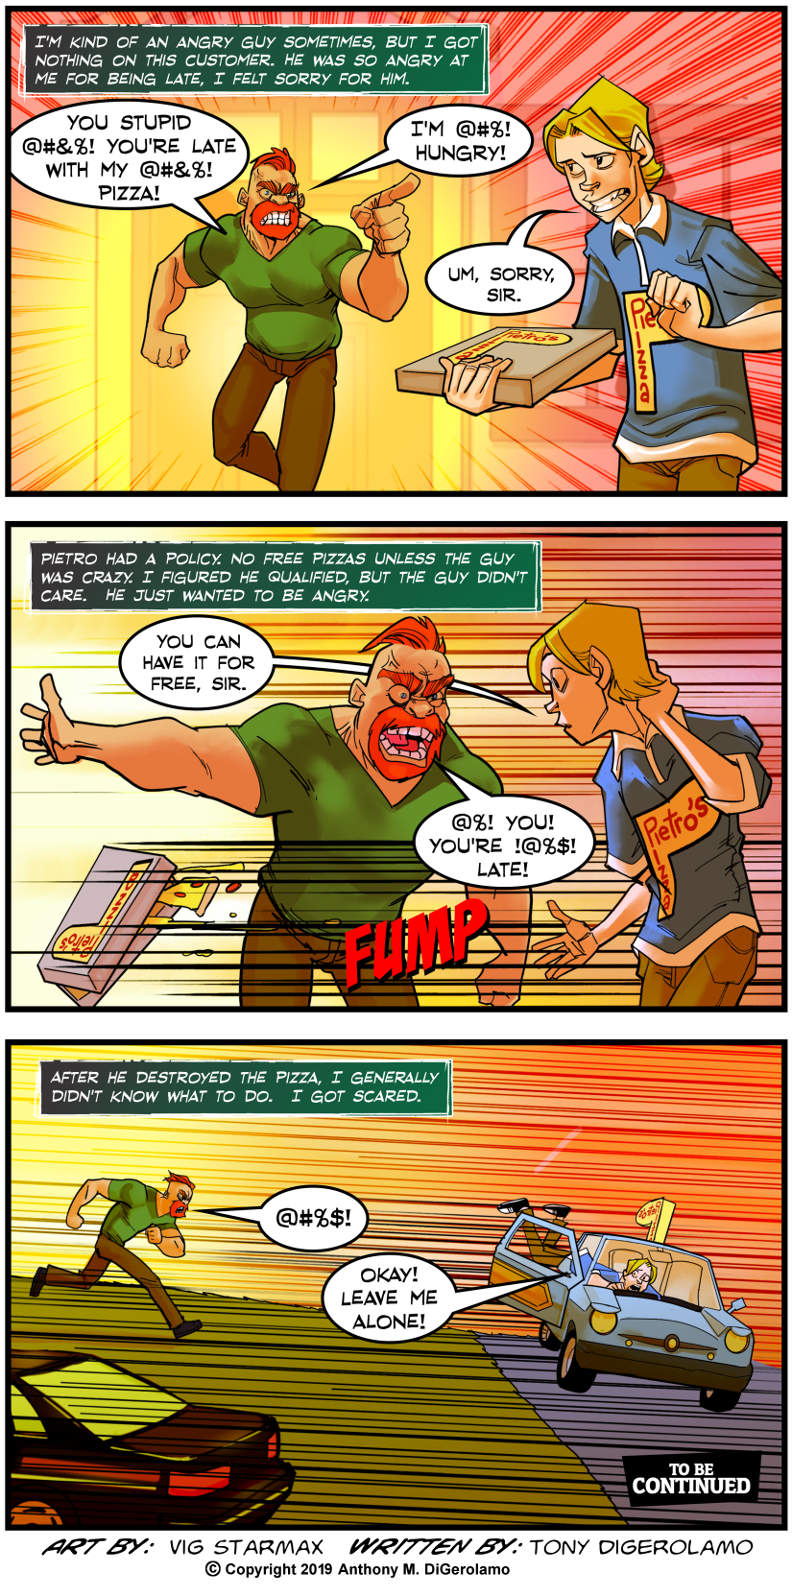 Tales of Pizza:  The Angriest Customer